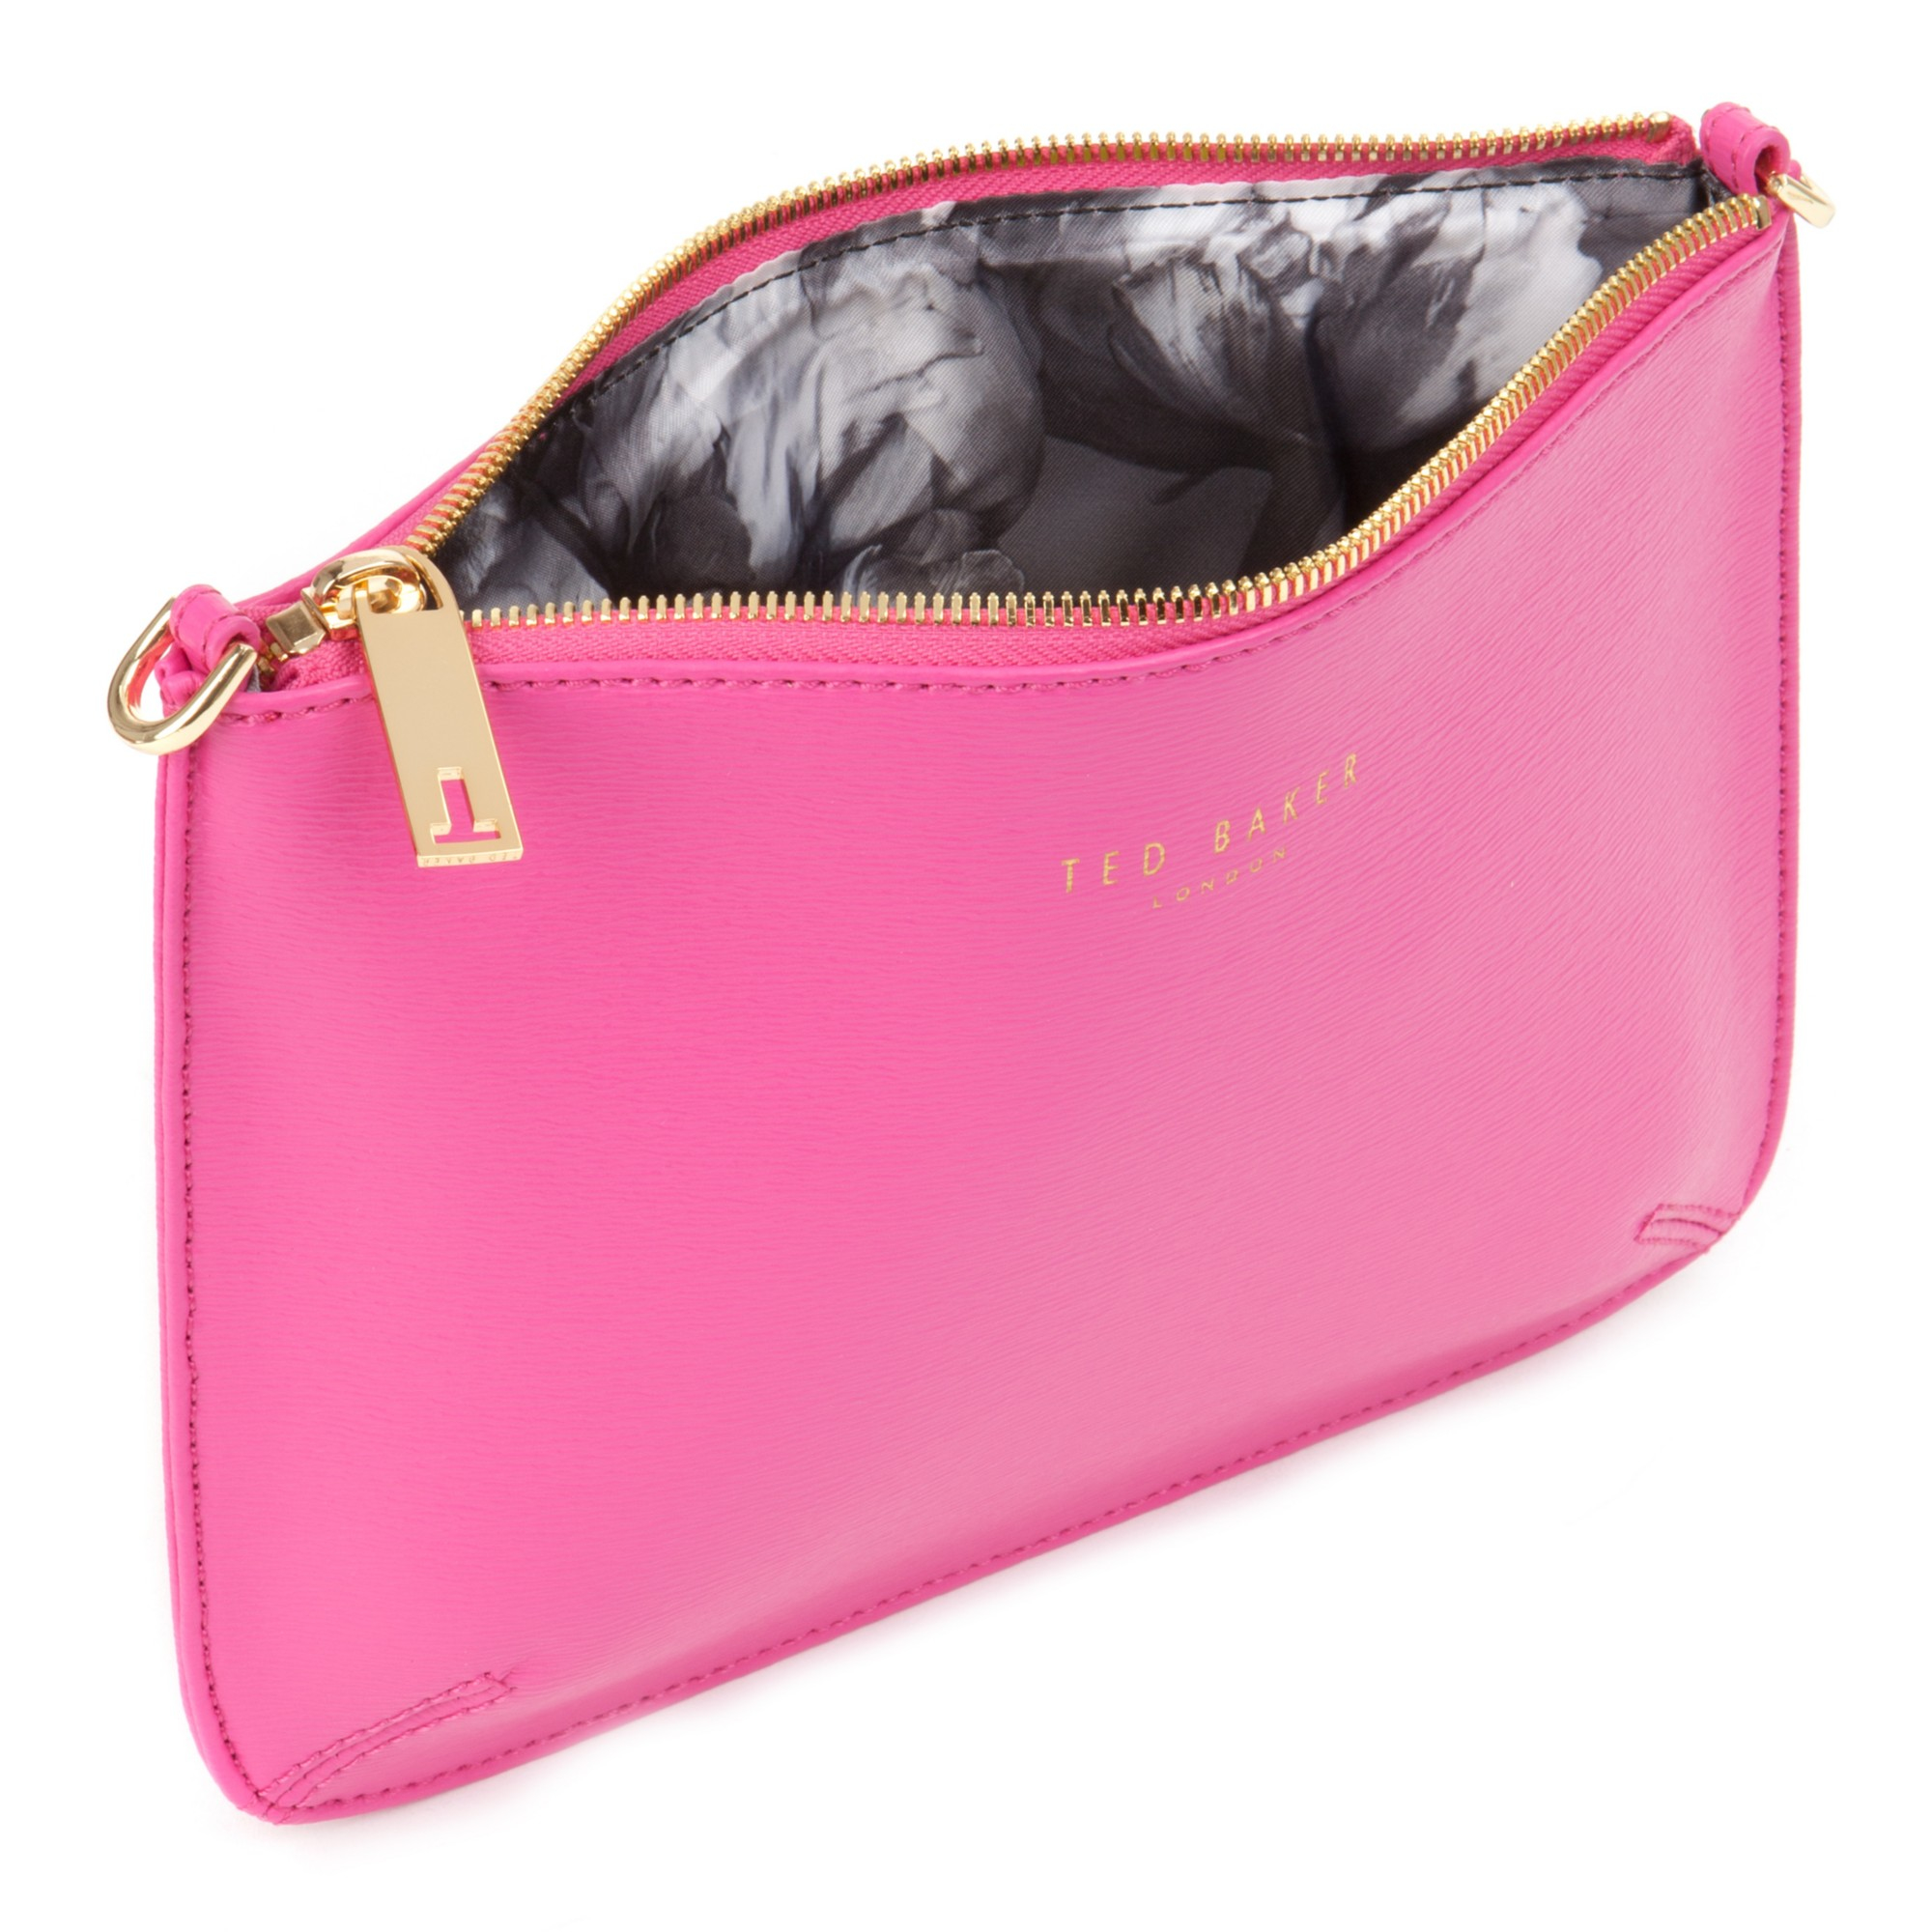 50070b560c1d Ted Baker Harley Chain Cross Body Bag in Pink - Lyst